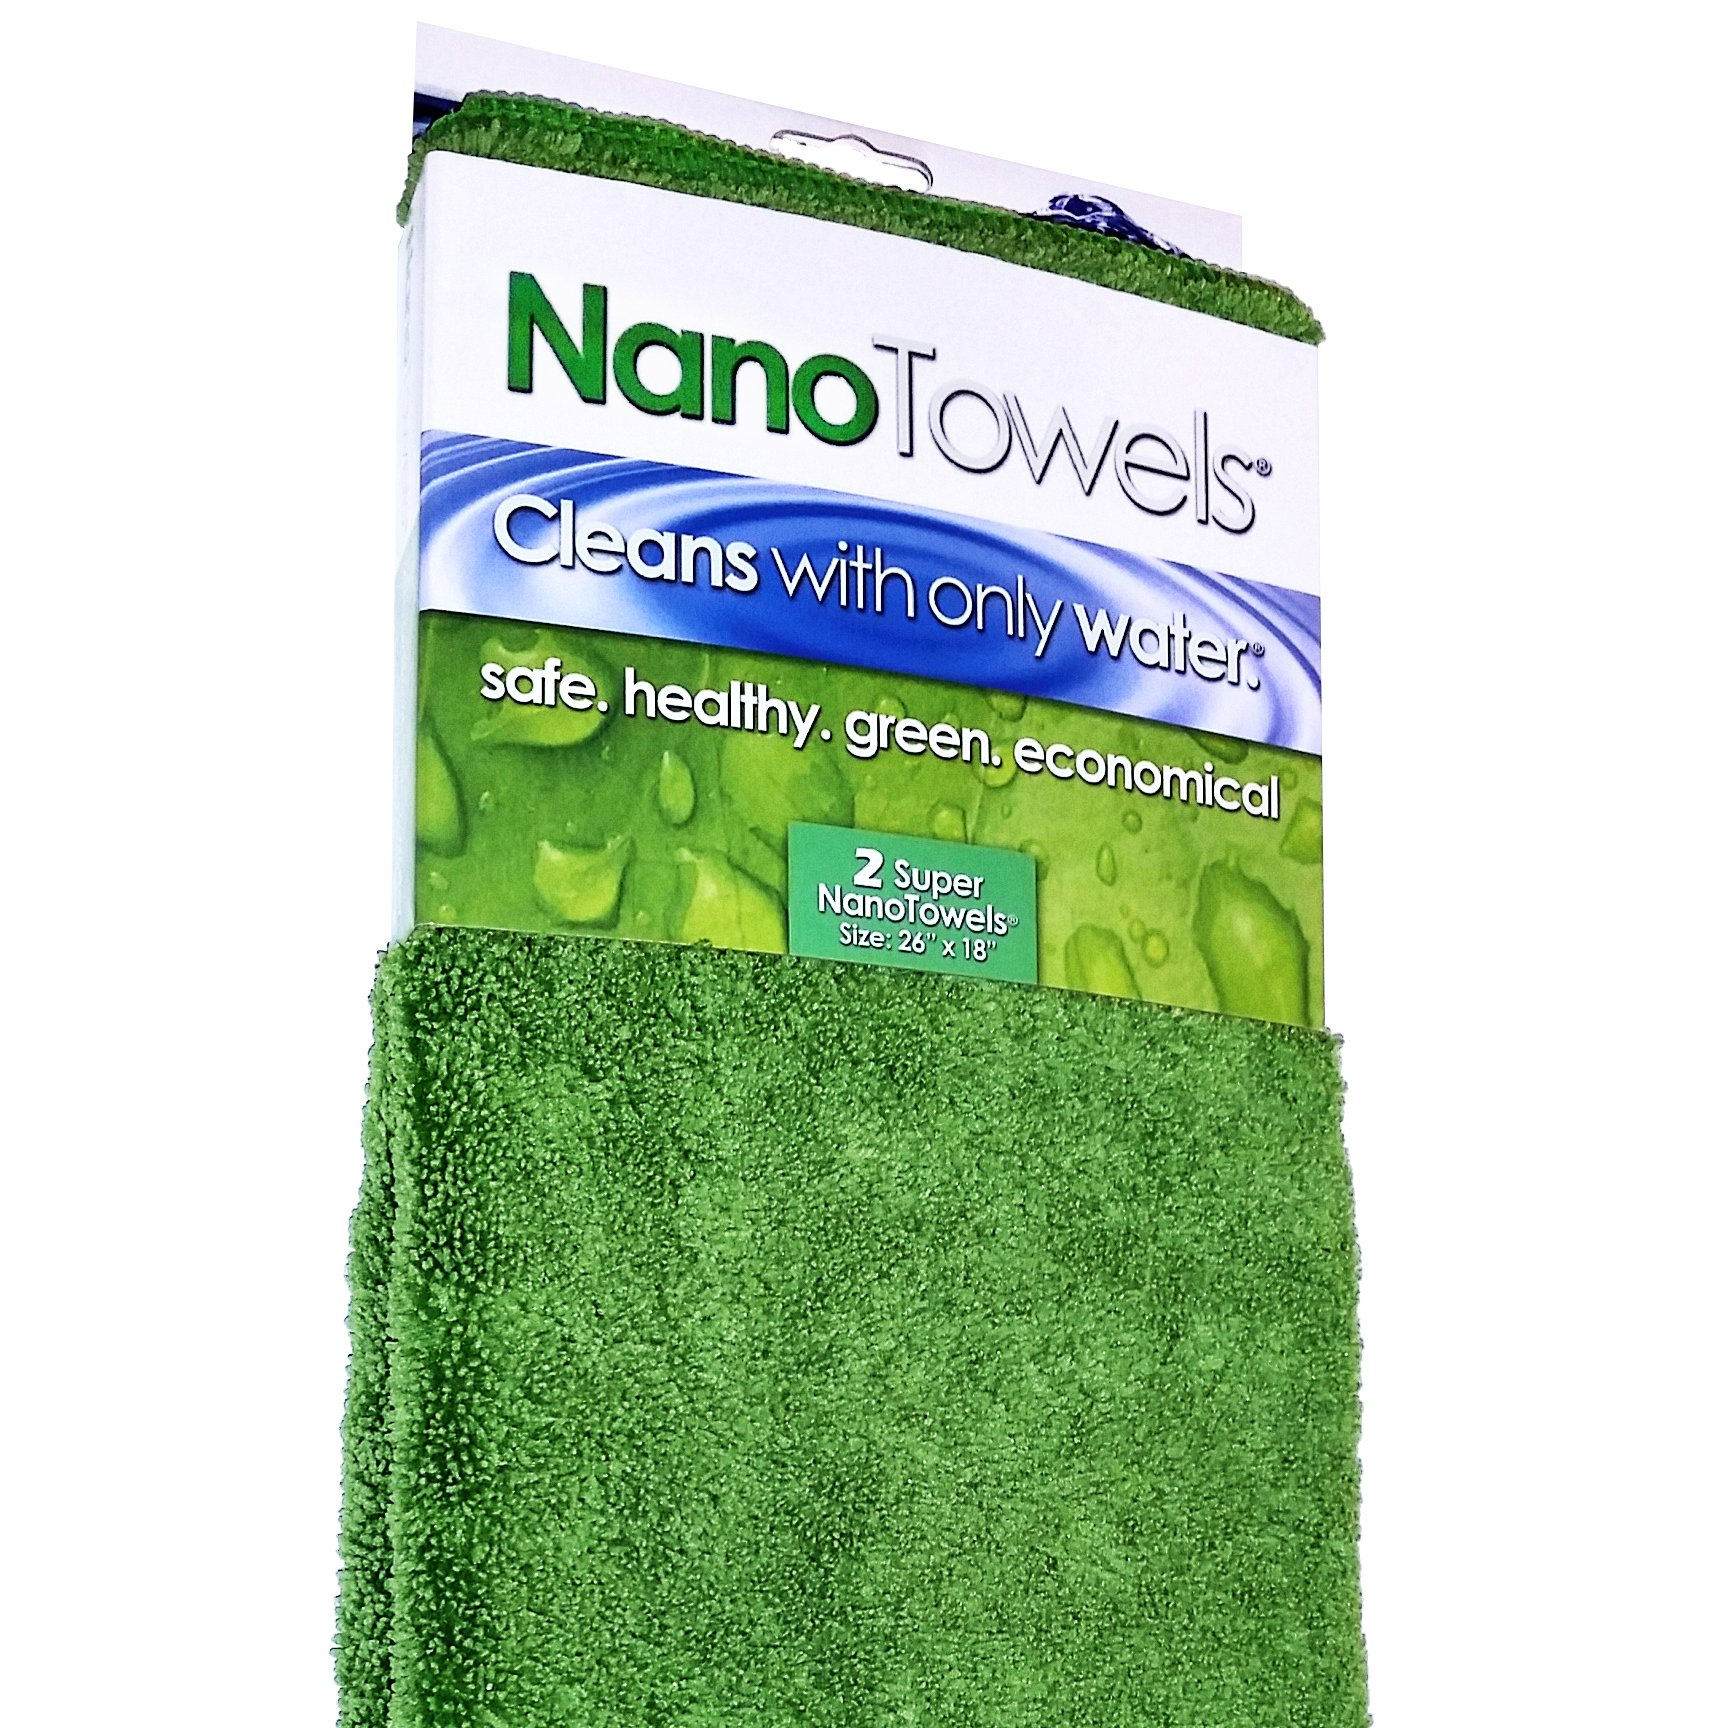 Life Miracle Nano Towels Supersized The Breakthrough Fabric That Replaces Paper Towels and Toxic Chemical Cleaners. Use As Bath Towels, Kitchen Towels, etc. All Purpose Cleaning Wipes 26x18 by Life Miracle